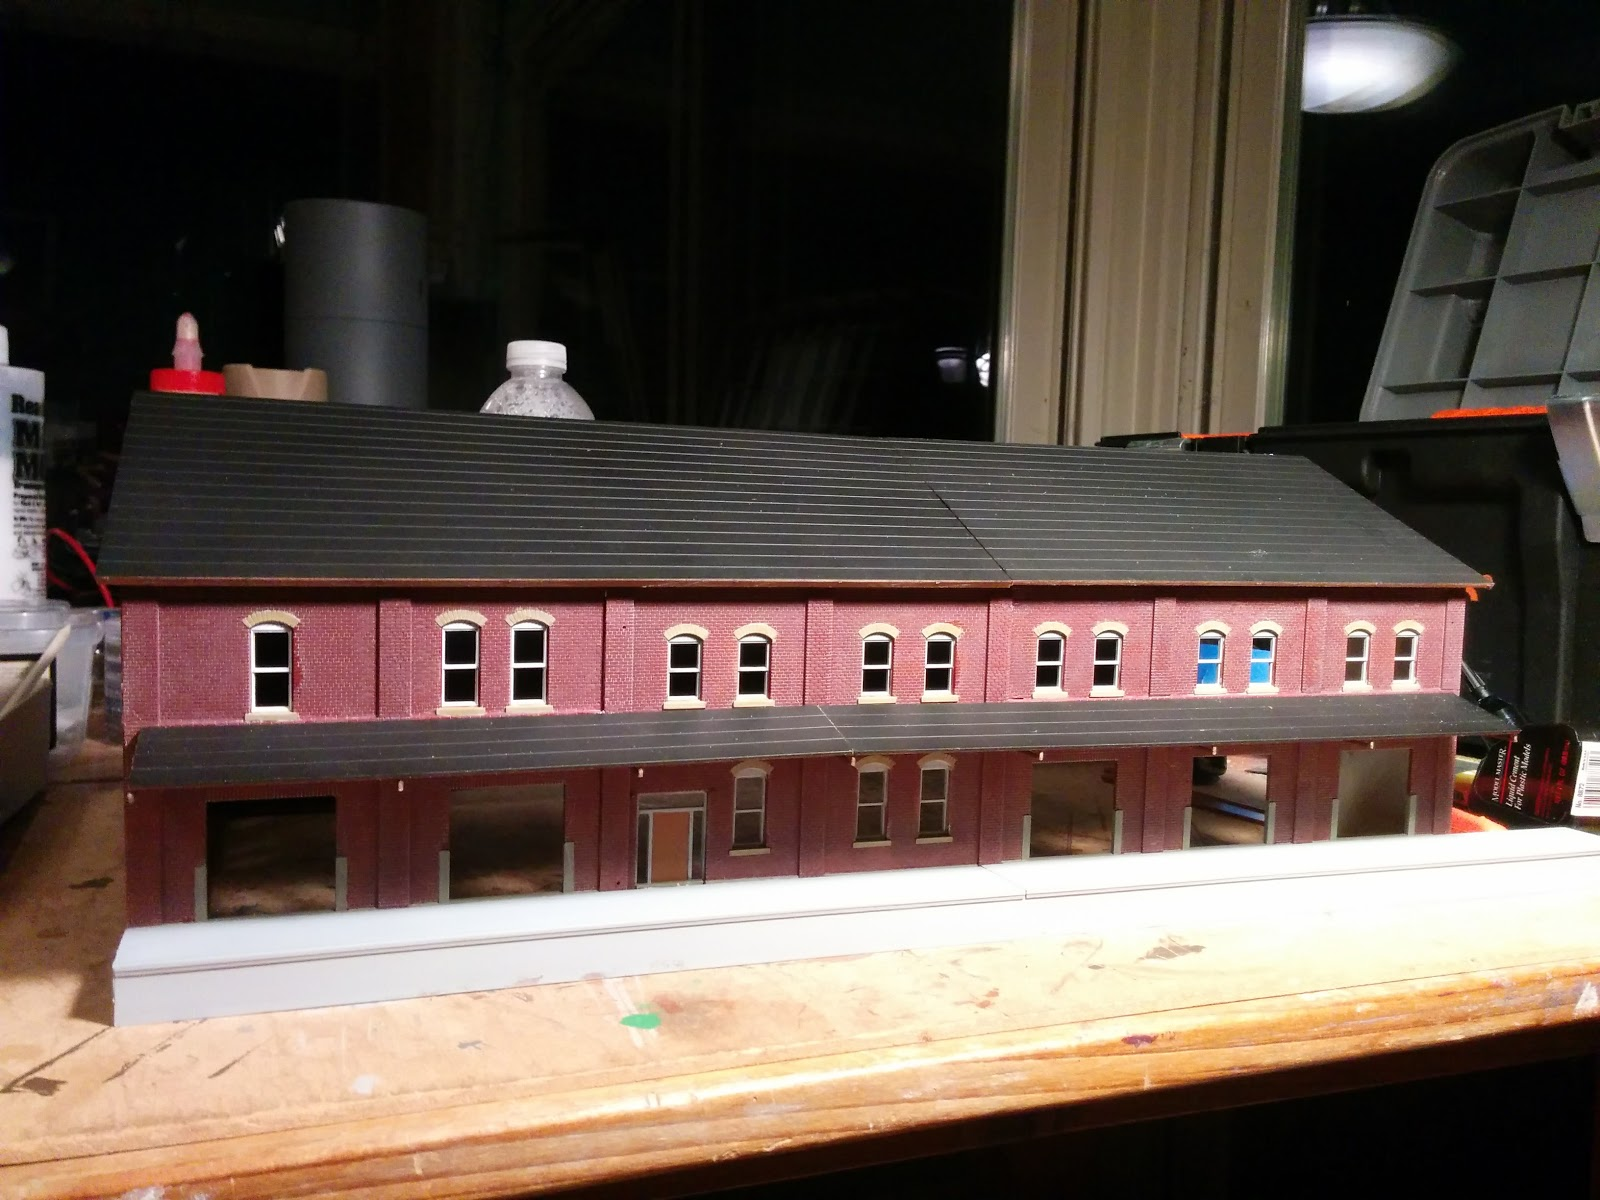 Lostentry - Welztalbahn, Model Railroading, and more: Hallelujah